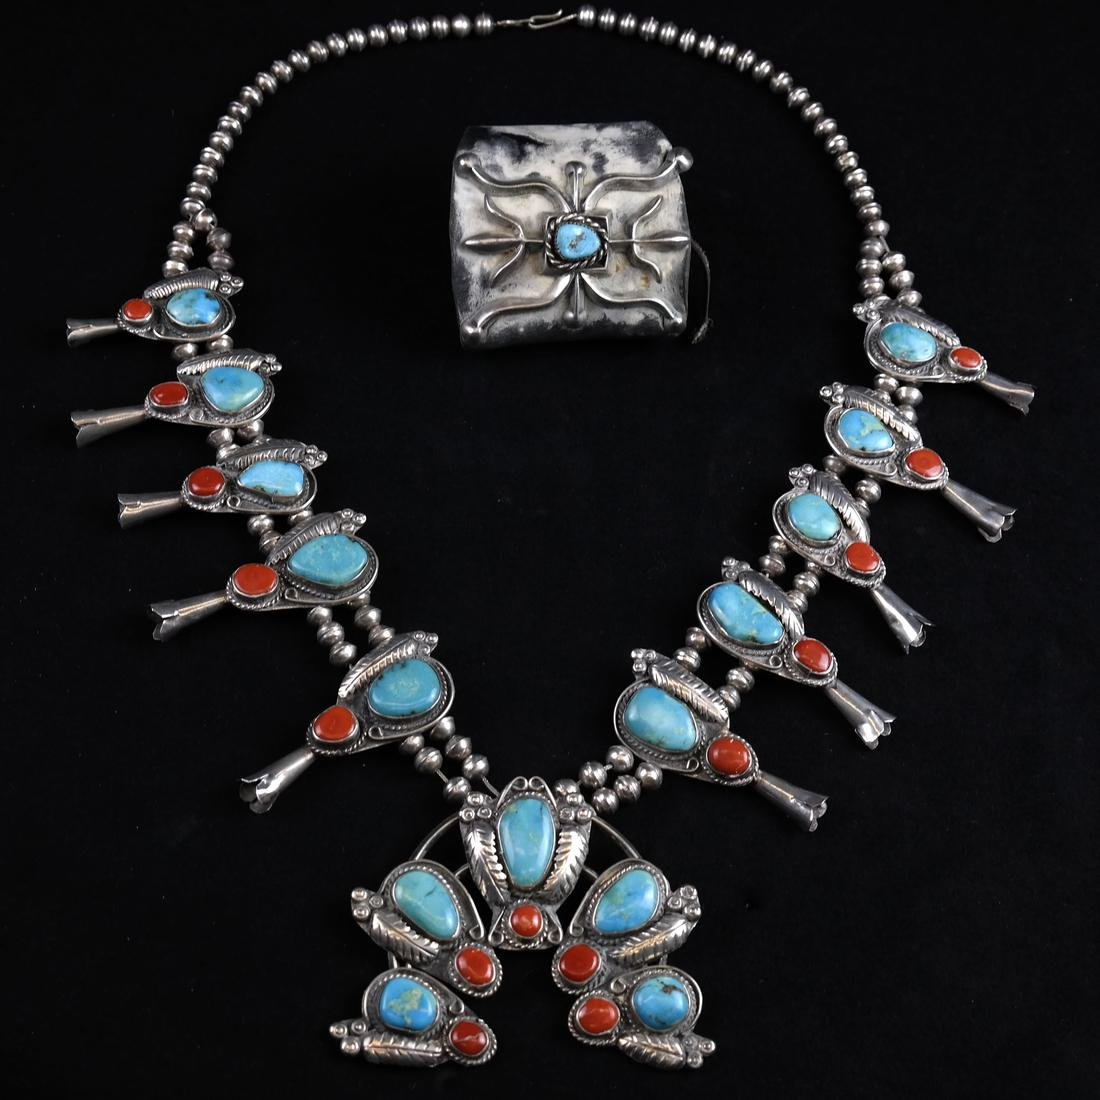 Native American Necklace & Bracelet